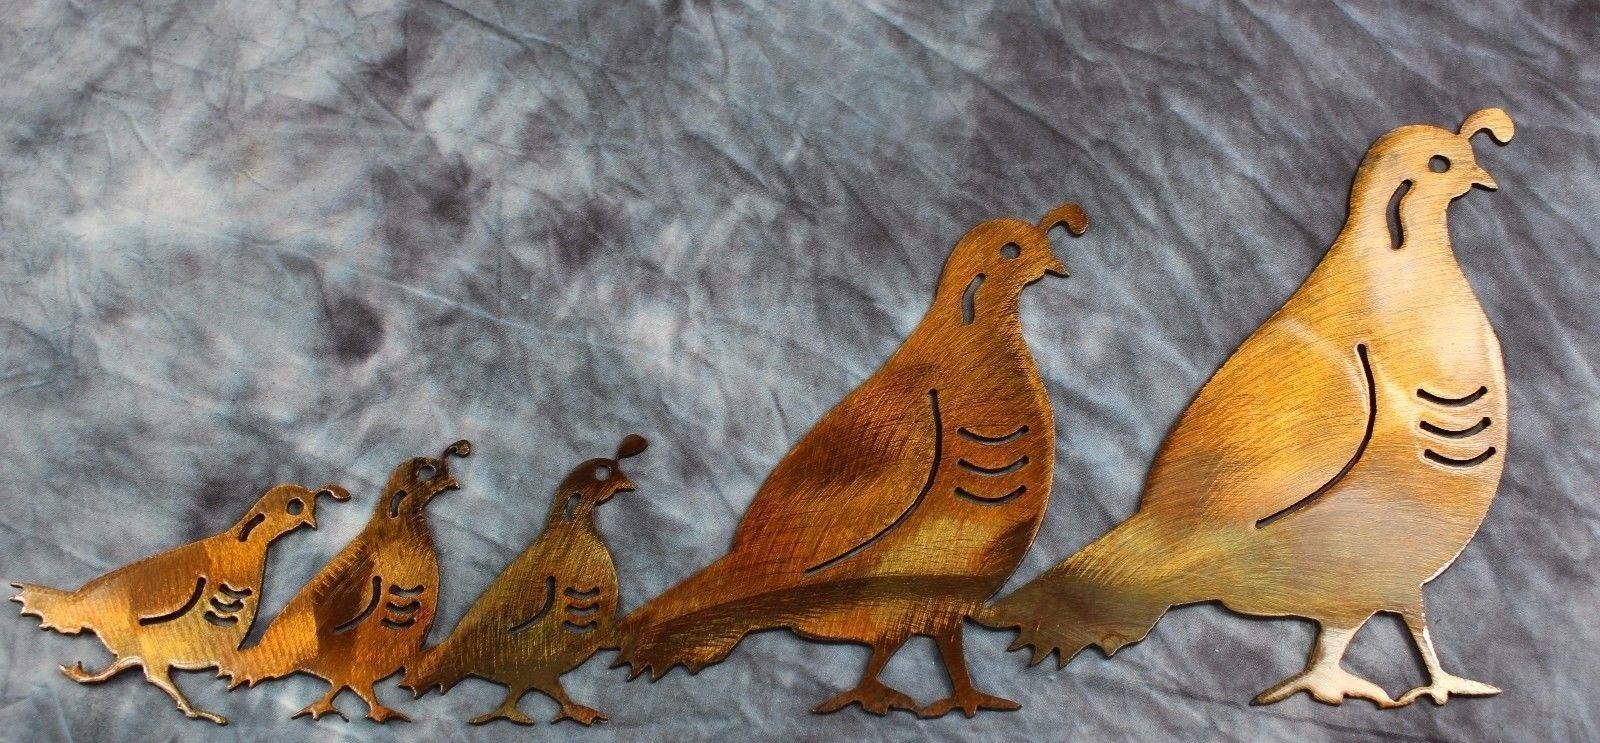 Arizona Quail Family By Hgmw Metal Wall Art And 50 Similar Items S L1600